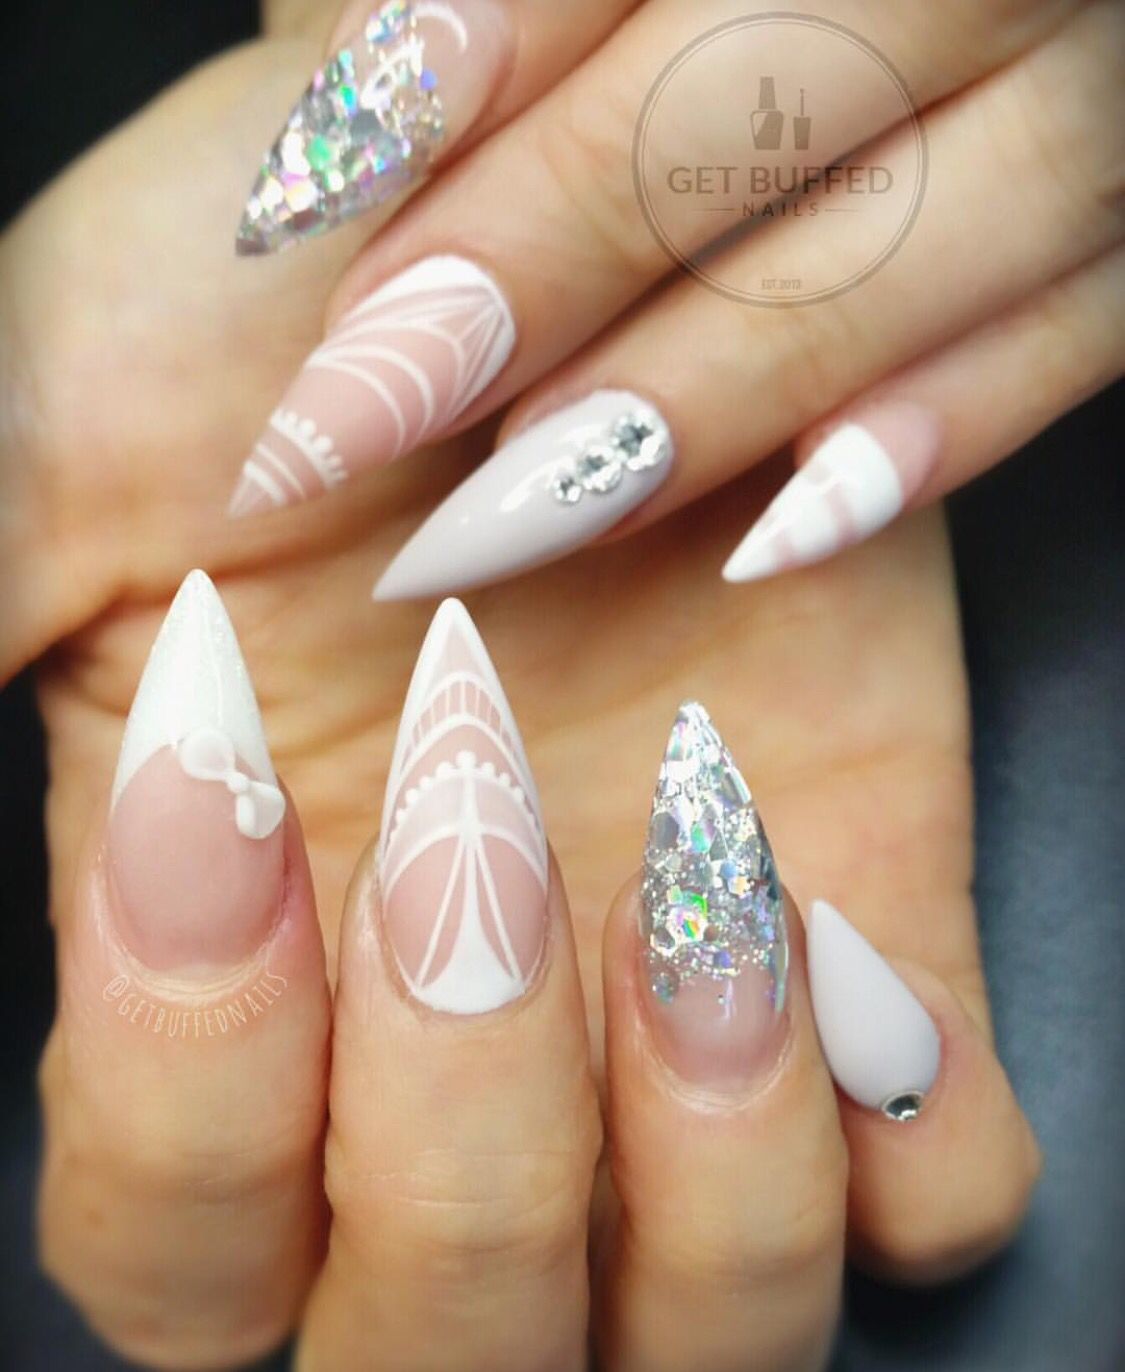 By get buffed nails | Ascesorios de uñas. | Pinterest | Goth nails ...